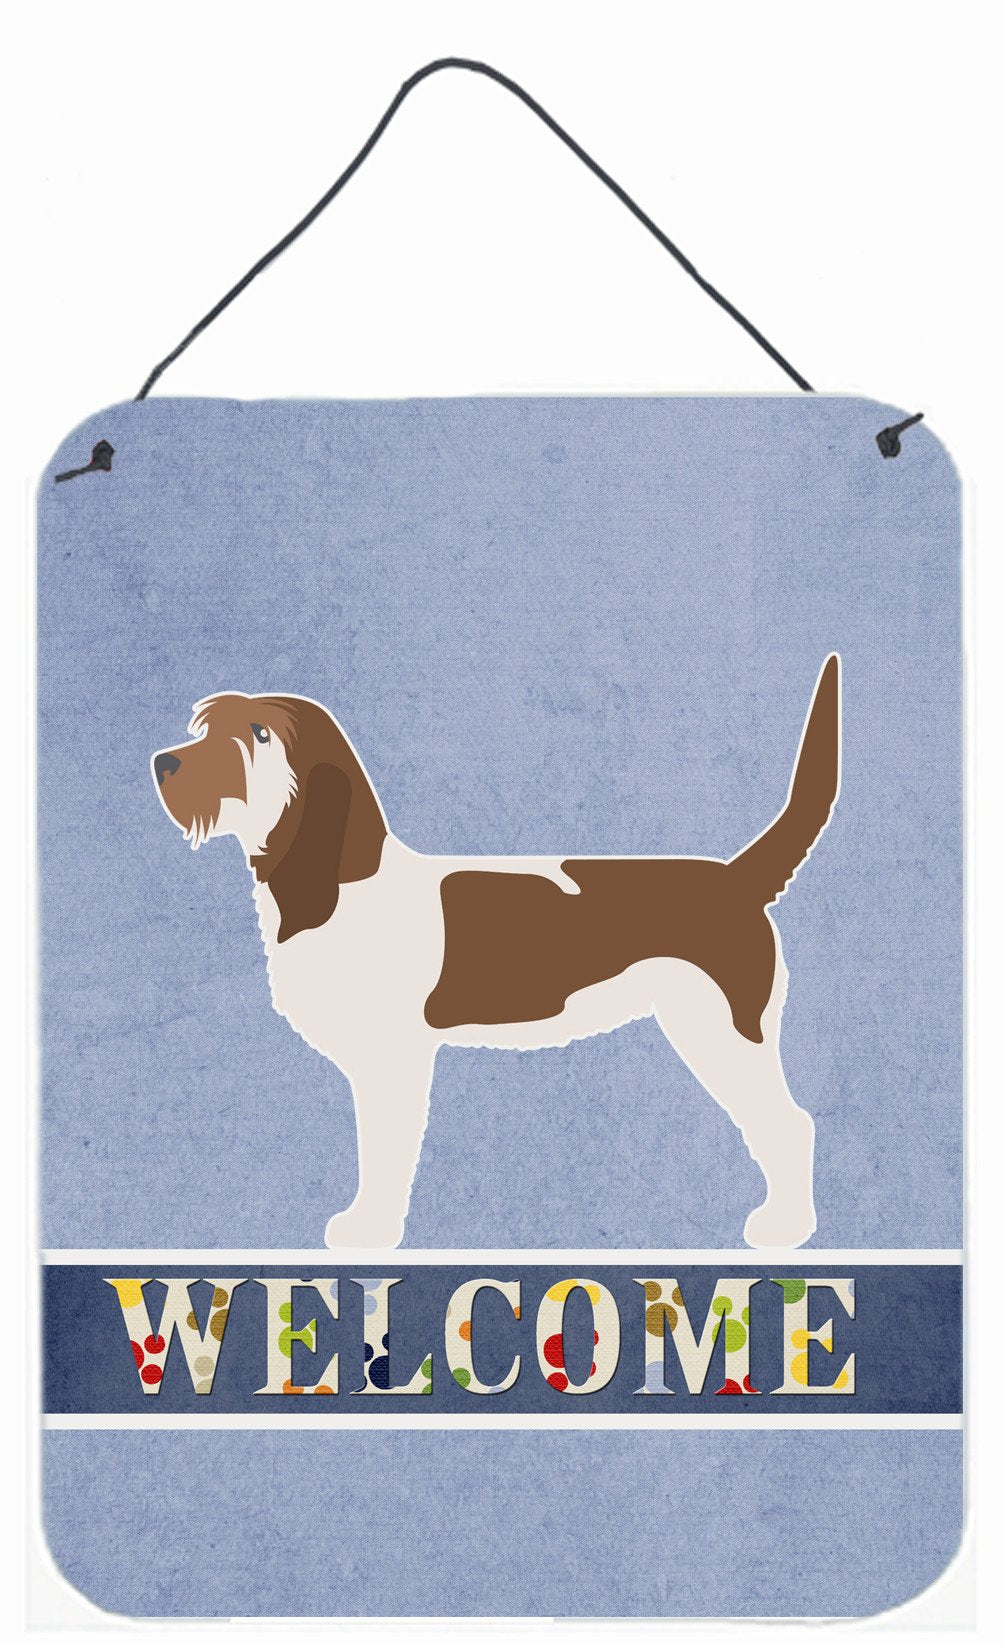 Grand Basset Griffon Vendeen Welcome Wall or Door Hanging Prints BB5494DS1216 by Caroline's Treasures